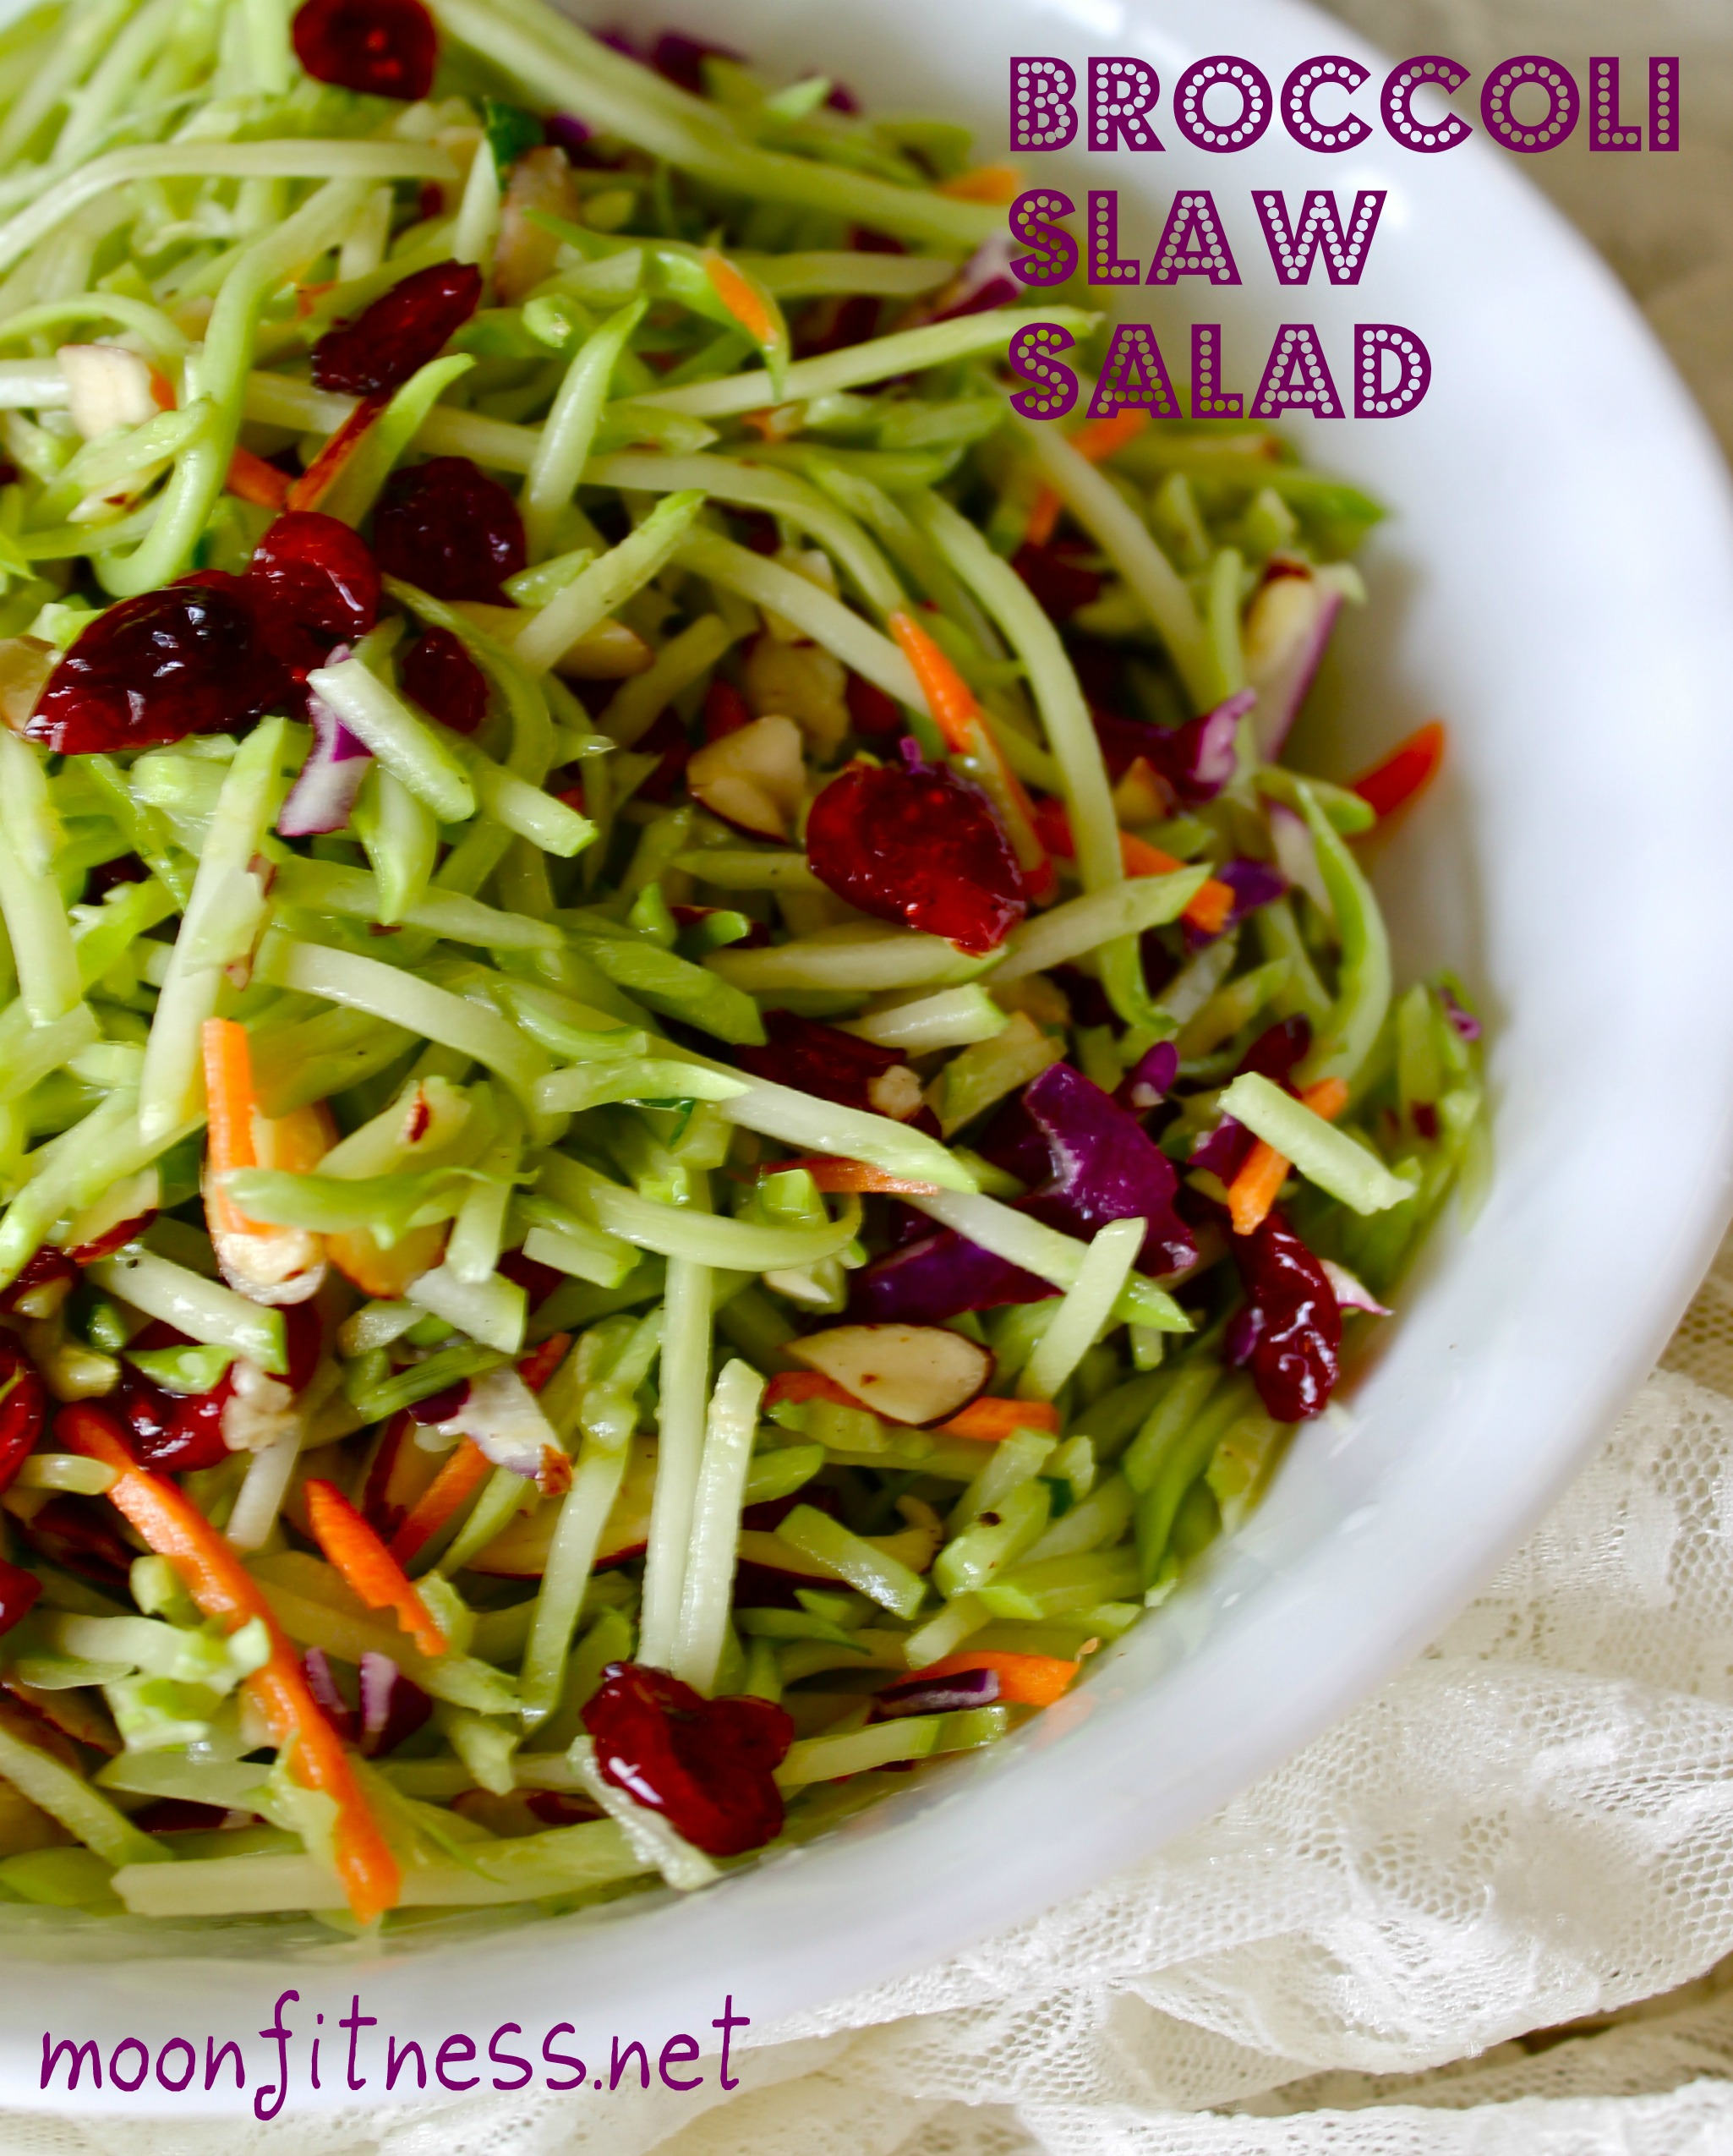 Recipe to Kickstart Your Spring Tastebuds- Broccoli Slaw Salad!